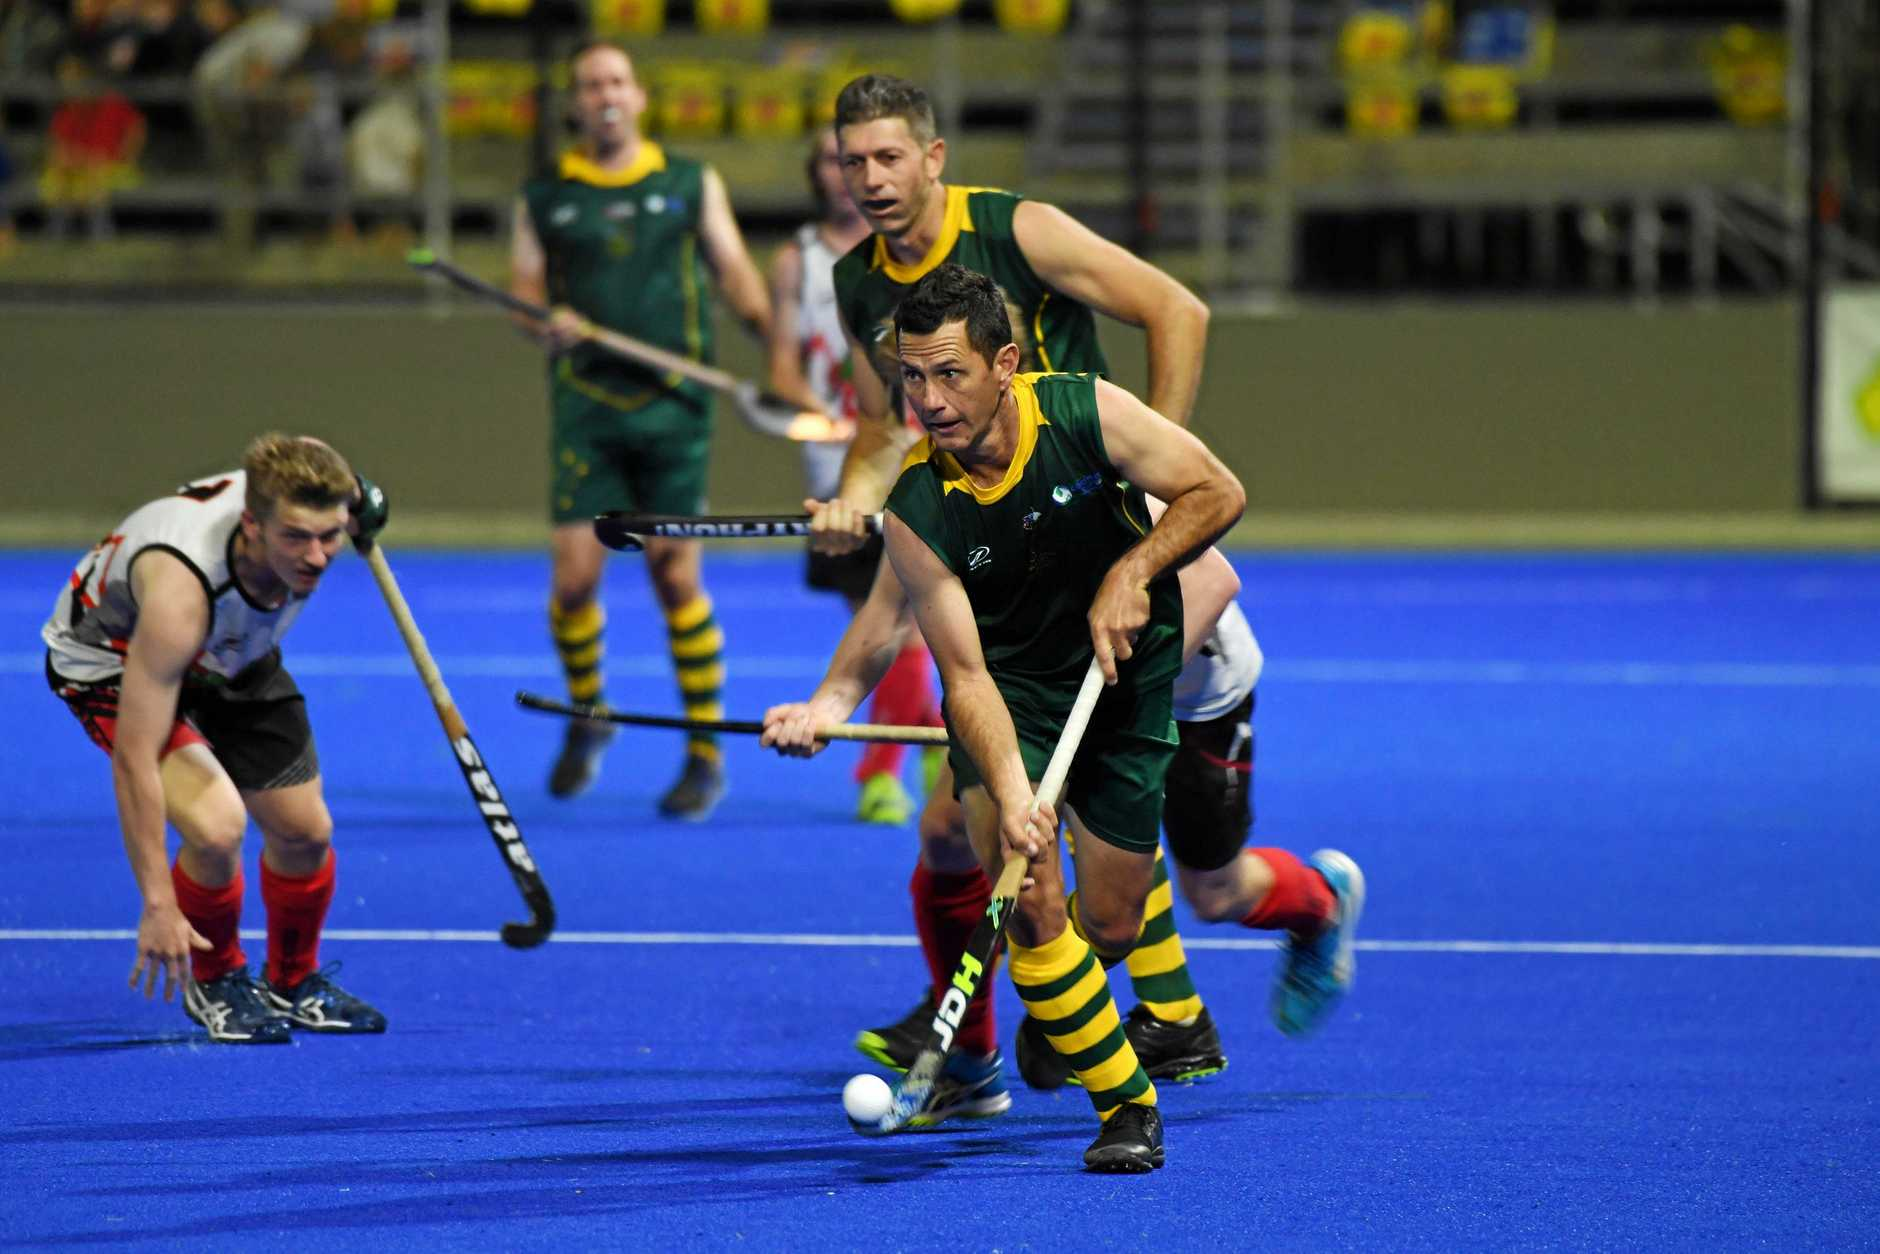 Rockhampton's hockey champion Jamie Dwyer in full flight.